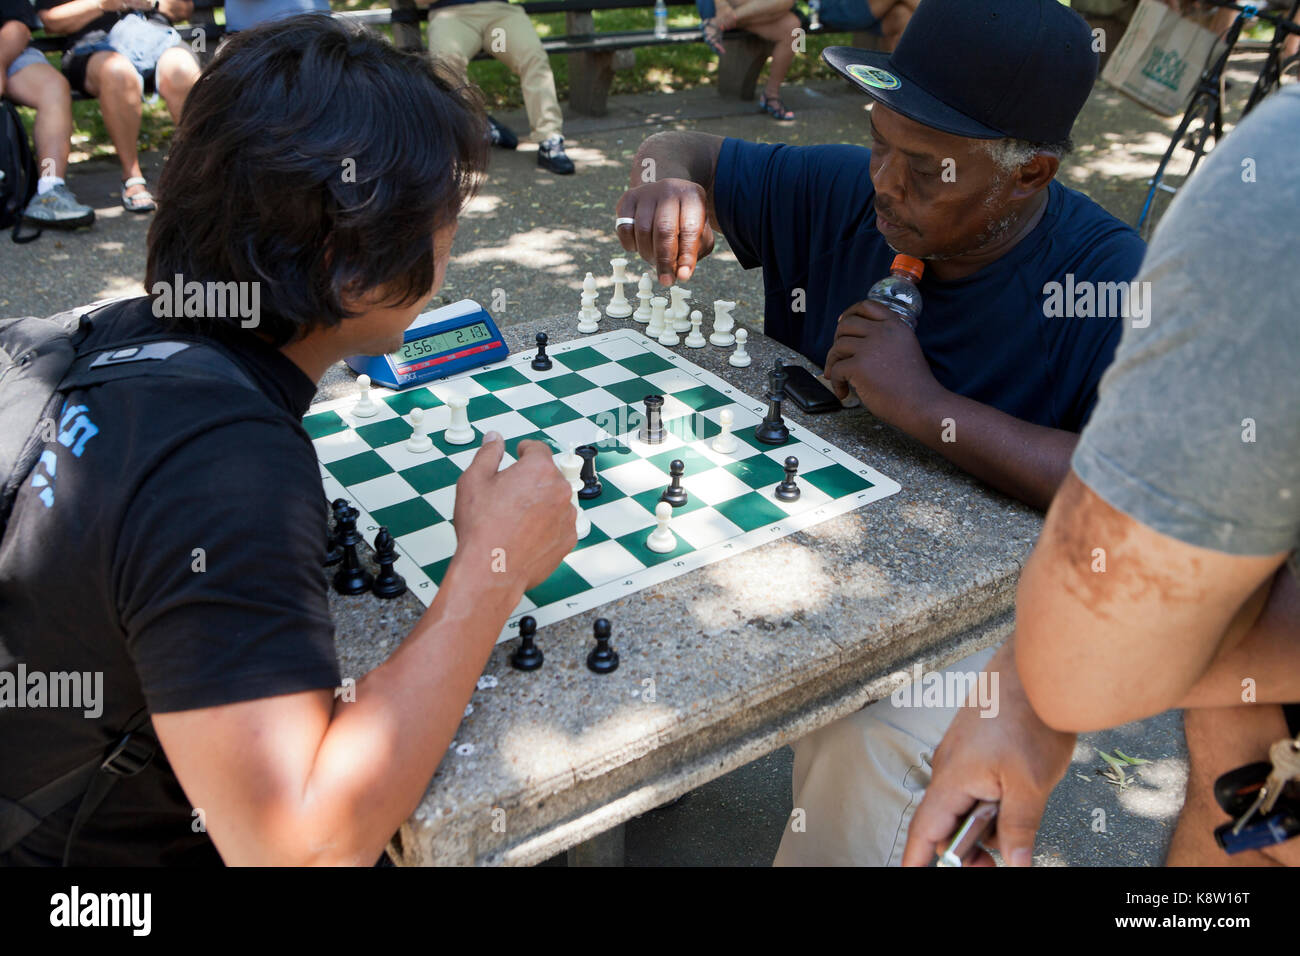 Men playing chess outdoors in a park at Dupont Circle - Washington, DC USA - Stock Image